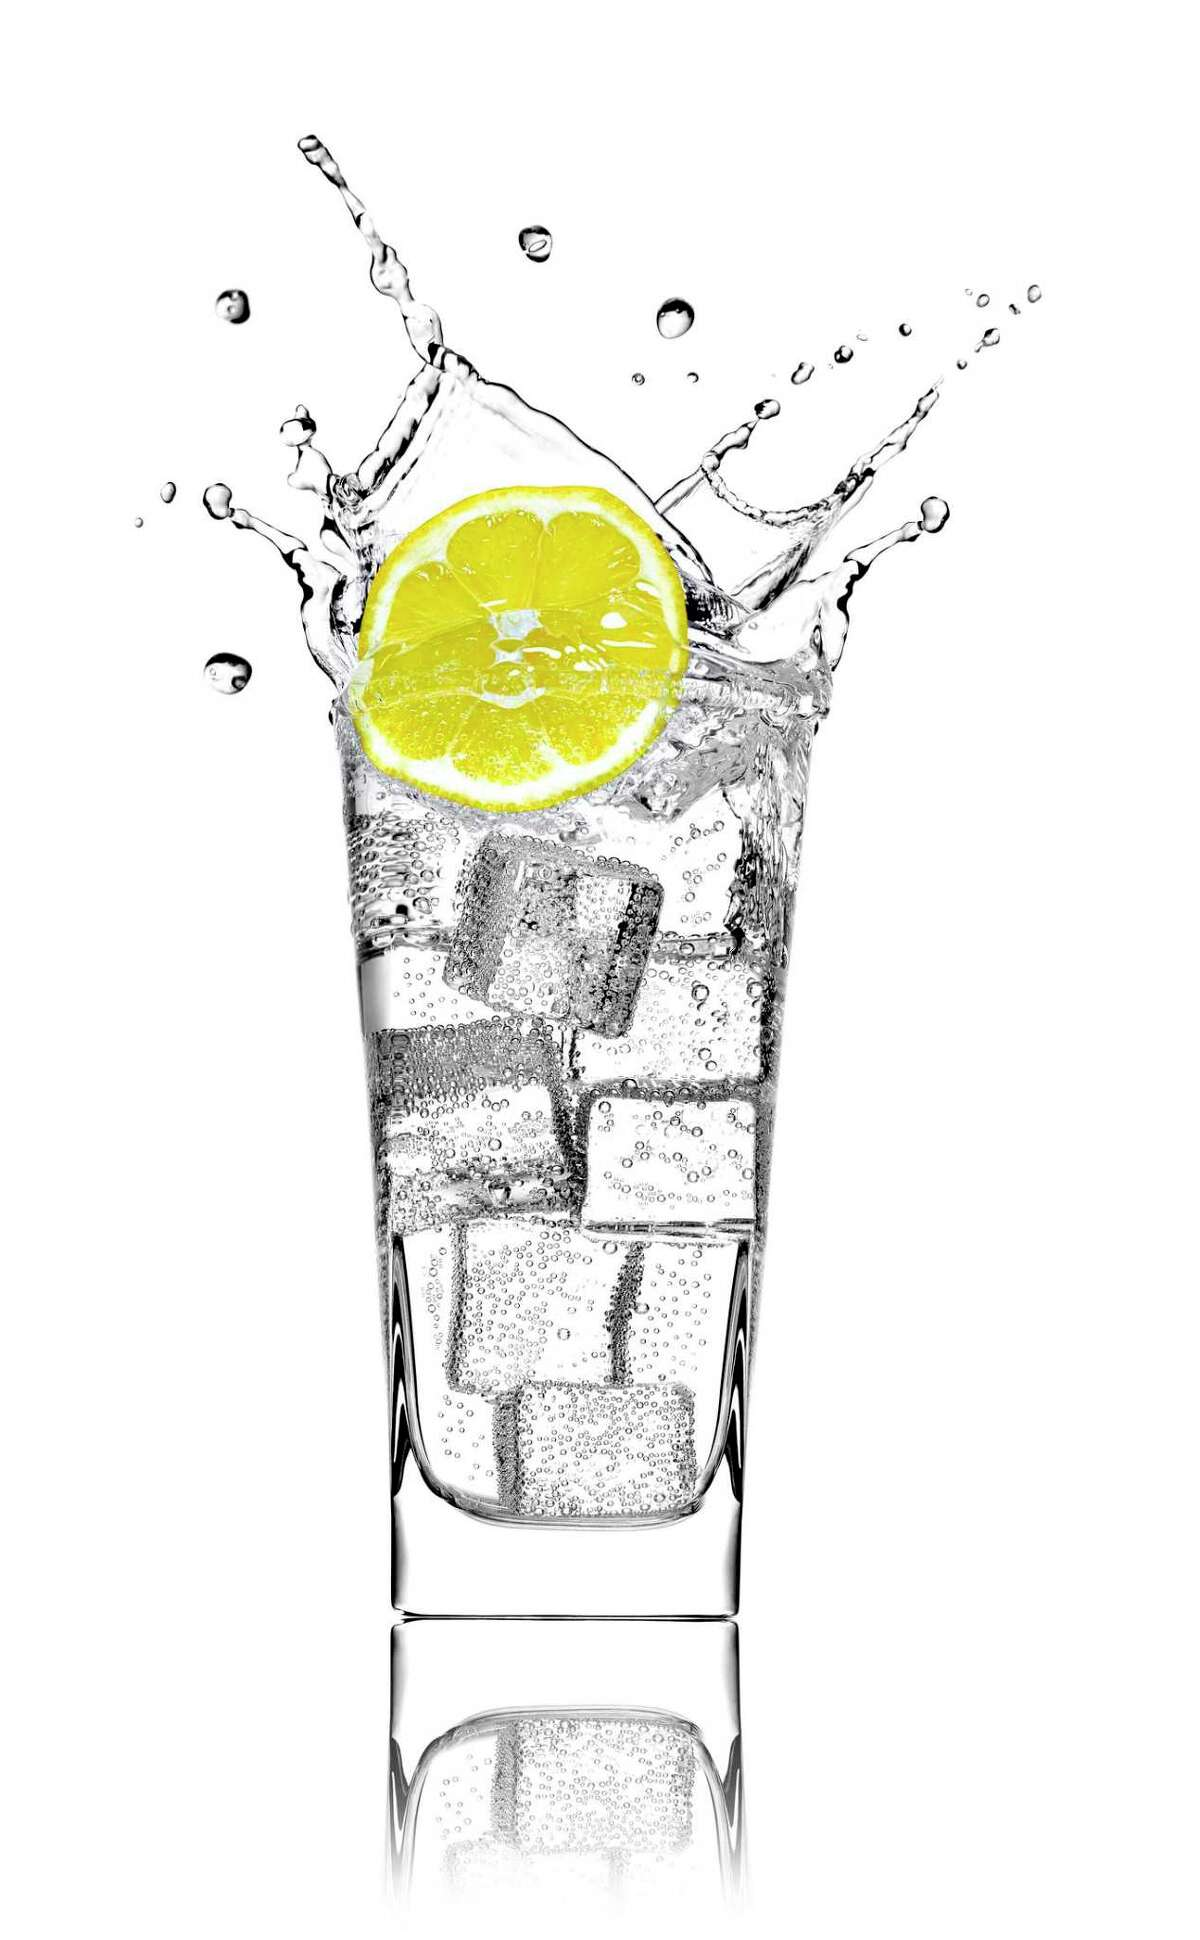 Infuse your water with sliced lemons, cucumbers and other vegetables to add flavor to plain water without adding sugar.